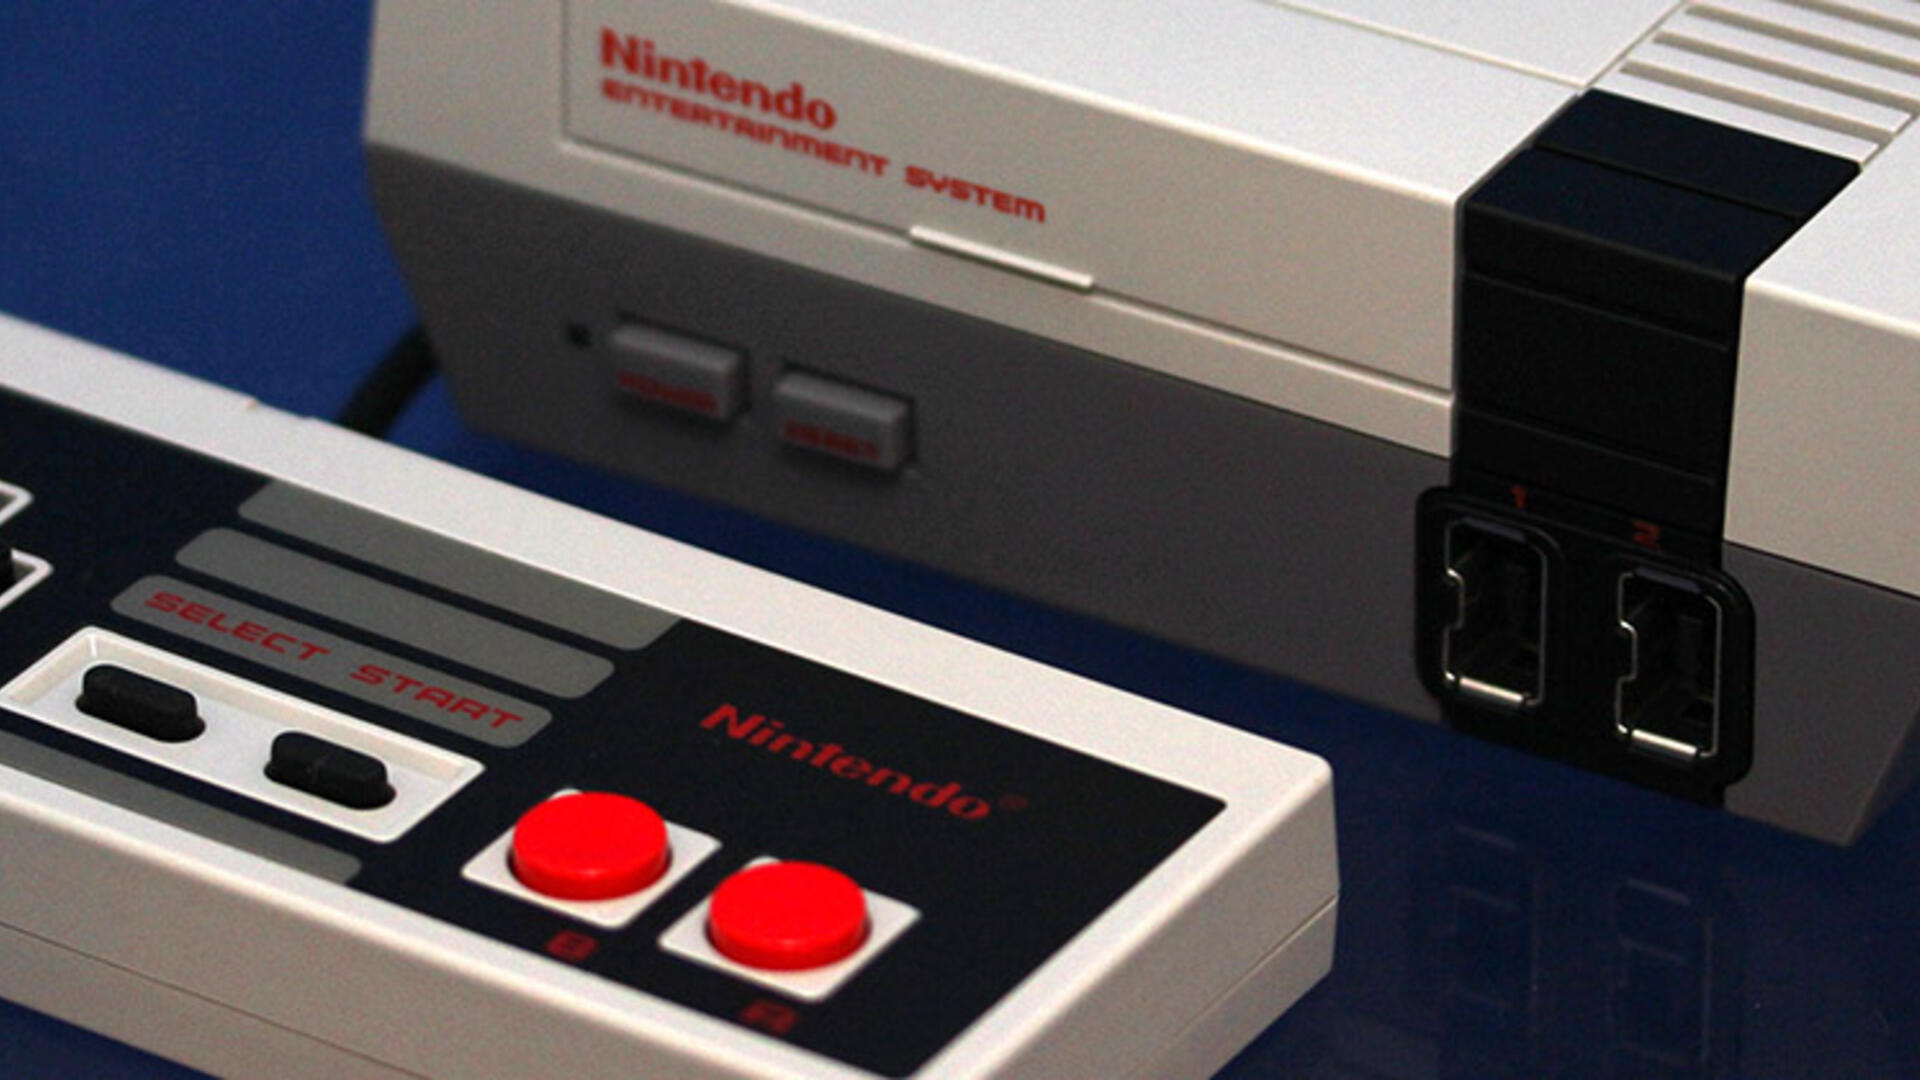 NES Classic Edition F A Q : UPDATE: New Stock Coming in 2018